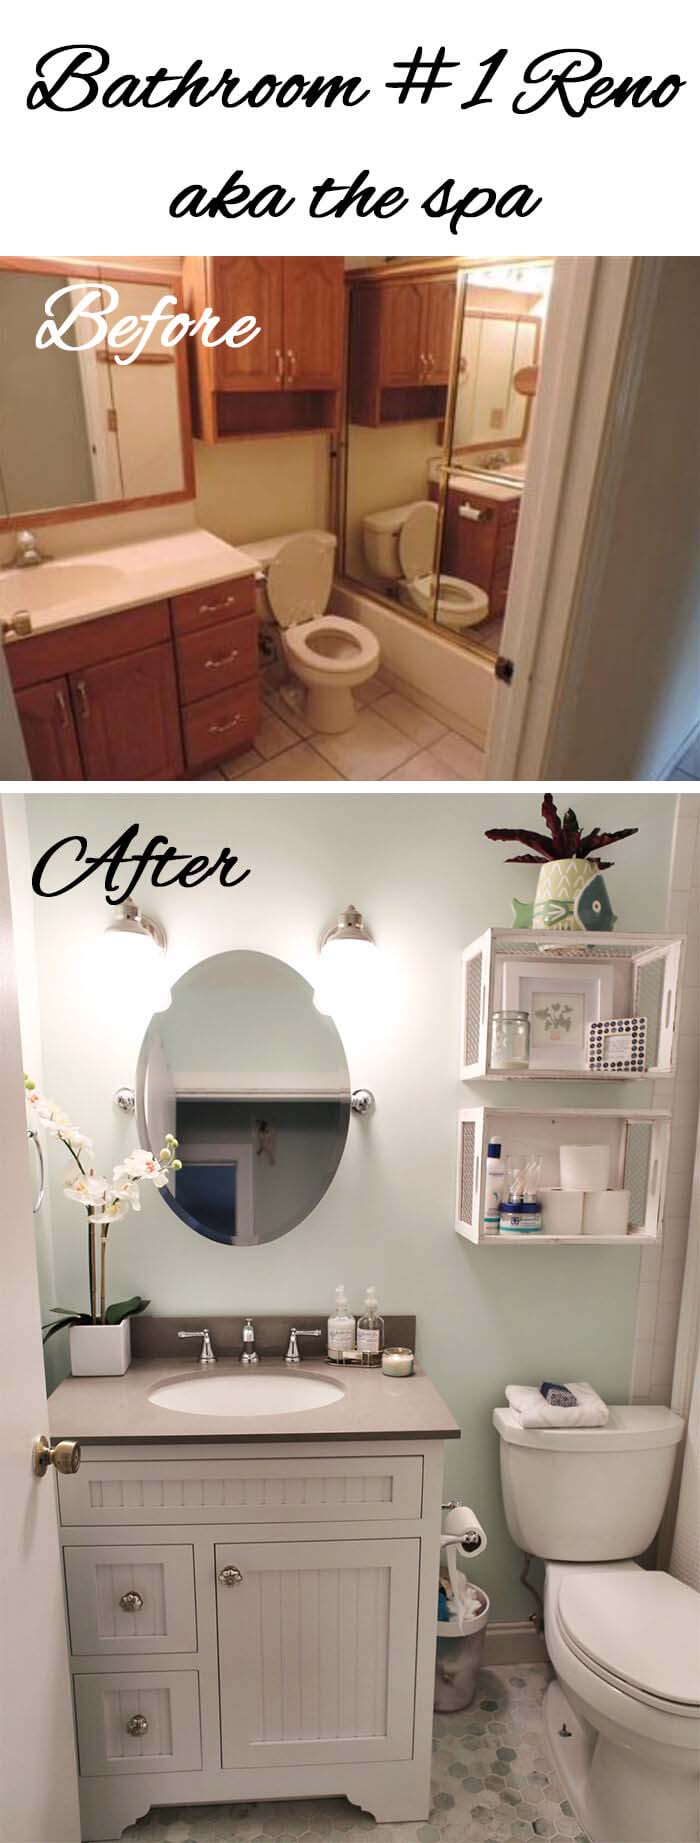 Light Colors and Open Storage Make the Room Bigger #bathroom #makeover #decorhomeideas